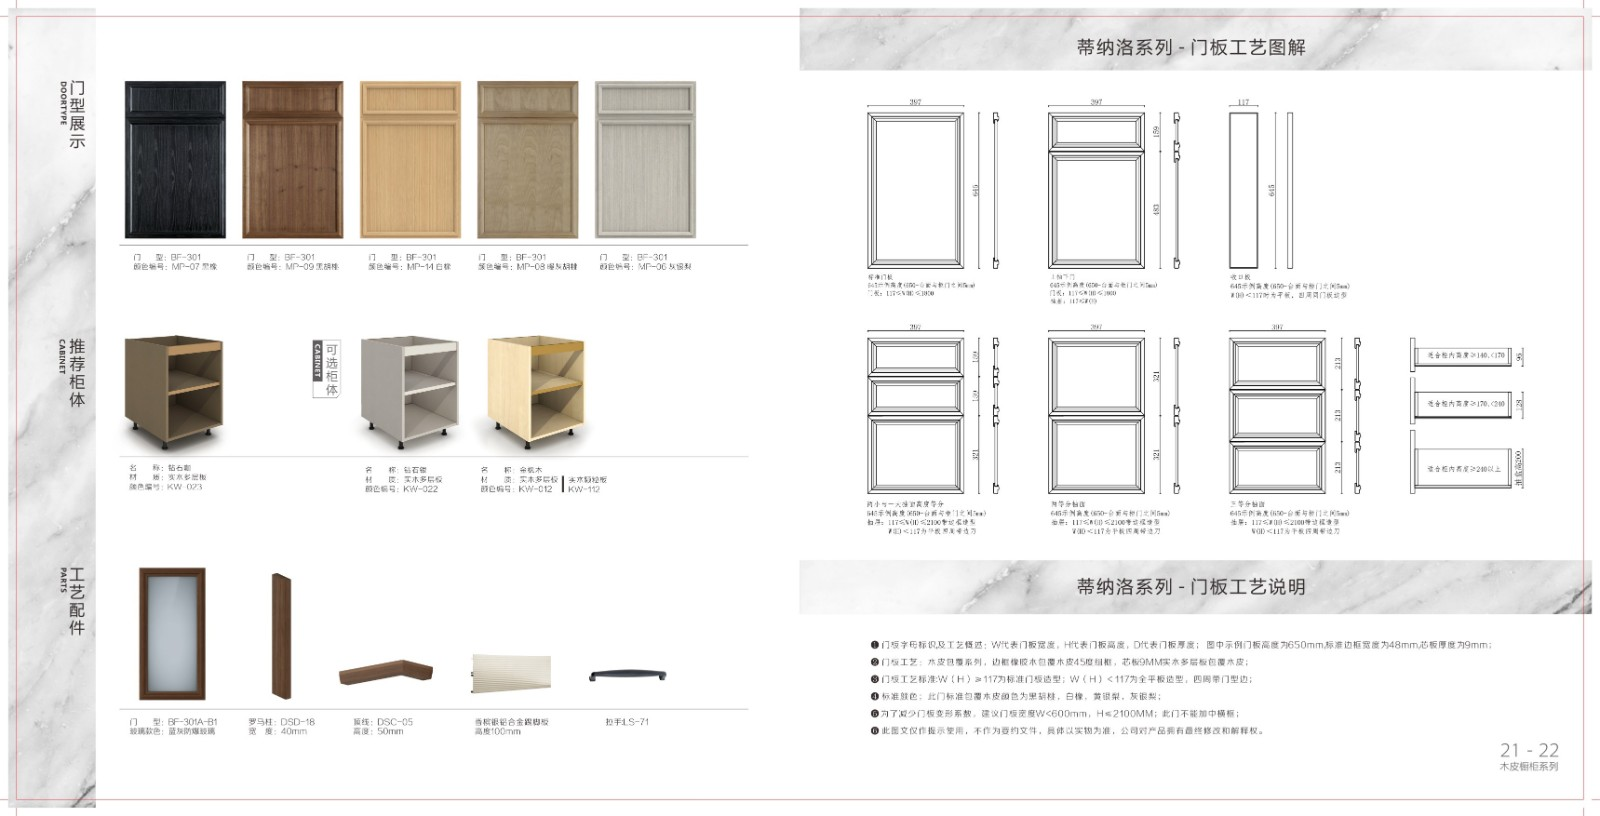 Wholesale bespoke kitchen cabinet sdk05 Supply fivestar hotel-5